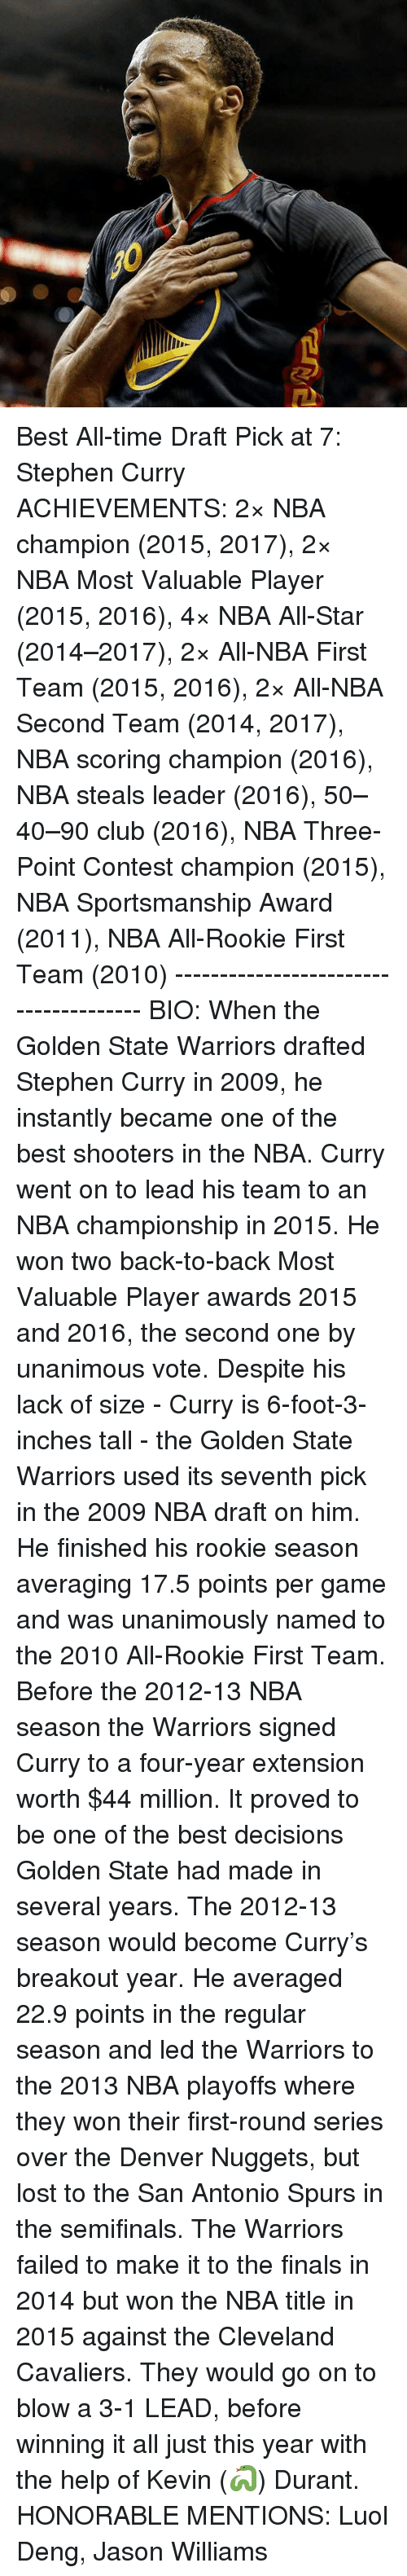 nba all stars: ene Best All-time Draft Pick at 7: Stephen Curry ACHIEVEMENTS: 2× NBA champion (2015, 2017), 2× NBA Most Valuable Player (2015, 2016), 4× NBA All-Star (2014–2017), 2× All-NBA First Team (2015, 2016), 2× All-NBA Second Team (2014, 2017), NBA scoring champion (2016), NBA steals leader (2016), 50–40–90 club (2016), NBA Three-Point Contest champion (2015), NBA Sportsmanship Award (2011), NBA All-Rookie First Team (2010) -------------------------------------- BIO: When the Golden State Warriors drafted Stephen Curry in 2009, he instantly became one of the best shooters in the NBA. Curry went on to lead his team to an NBA championship in 2015. He won two back-to-back Most Valuable Player awards 2015 and 2016, the second one by unanimous vote. Despite his lack of size - Curry is 6-foot-3-inches tall - the Golden State Warriors used its seventh pick in the 2009 NBA draft on him. He finished his rookie season averaging 17.5 points per game and was unanimously named to the 2010 All-Rookie First Team. Before the 2012-13 NBA season the Warriors signed Curry to a four-year extension worth $44 million. It proved to be one of the best decisions Golden State had made in several years. The 2012-13 season would become Curry's breakout year. He averaged 22.9 points in the regular season and led the Warriors to the 2013 NBA playoffs where they won their first-round series over the Denver Nuggets, but lost to the San Antonio Spurs in the semifinals. The Warriors failed to make it to the finals in 2014 but won the NBA title in 2015 against the Cleveland Cavaliers. They would go on to blow a 3-1 LEAD, before winning it all just this year with the help of Kevin (🐍) Durant. HONORABLE MENTIONS: Luol Deng, Jason Williams